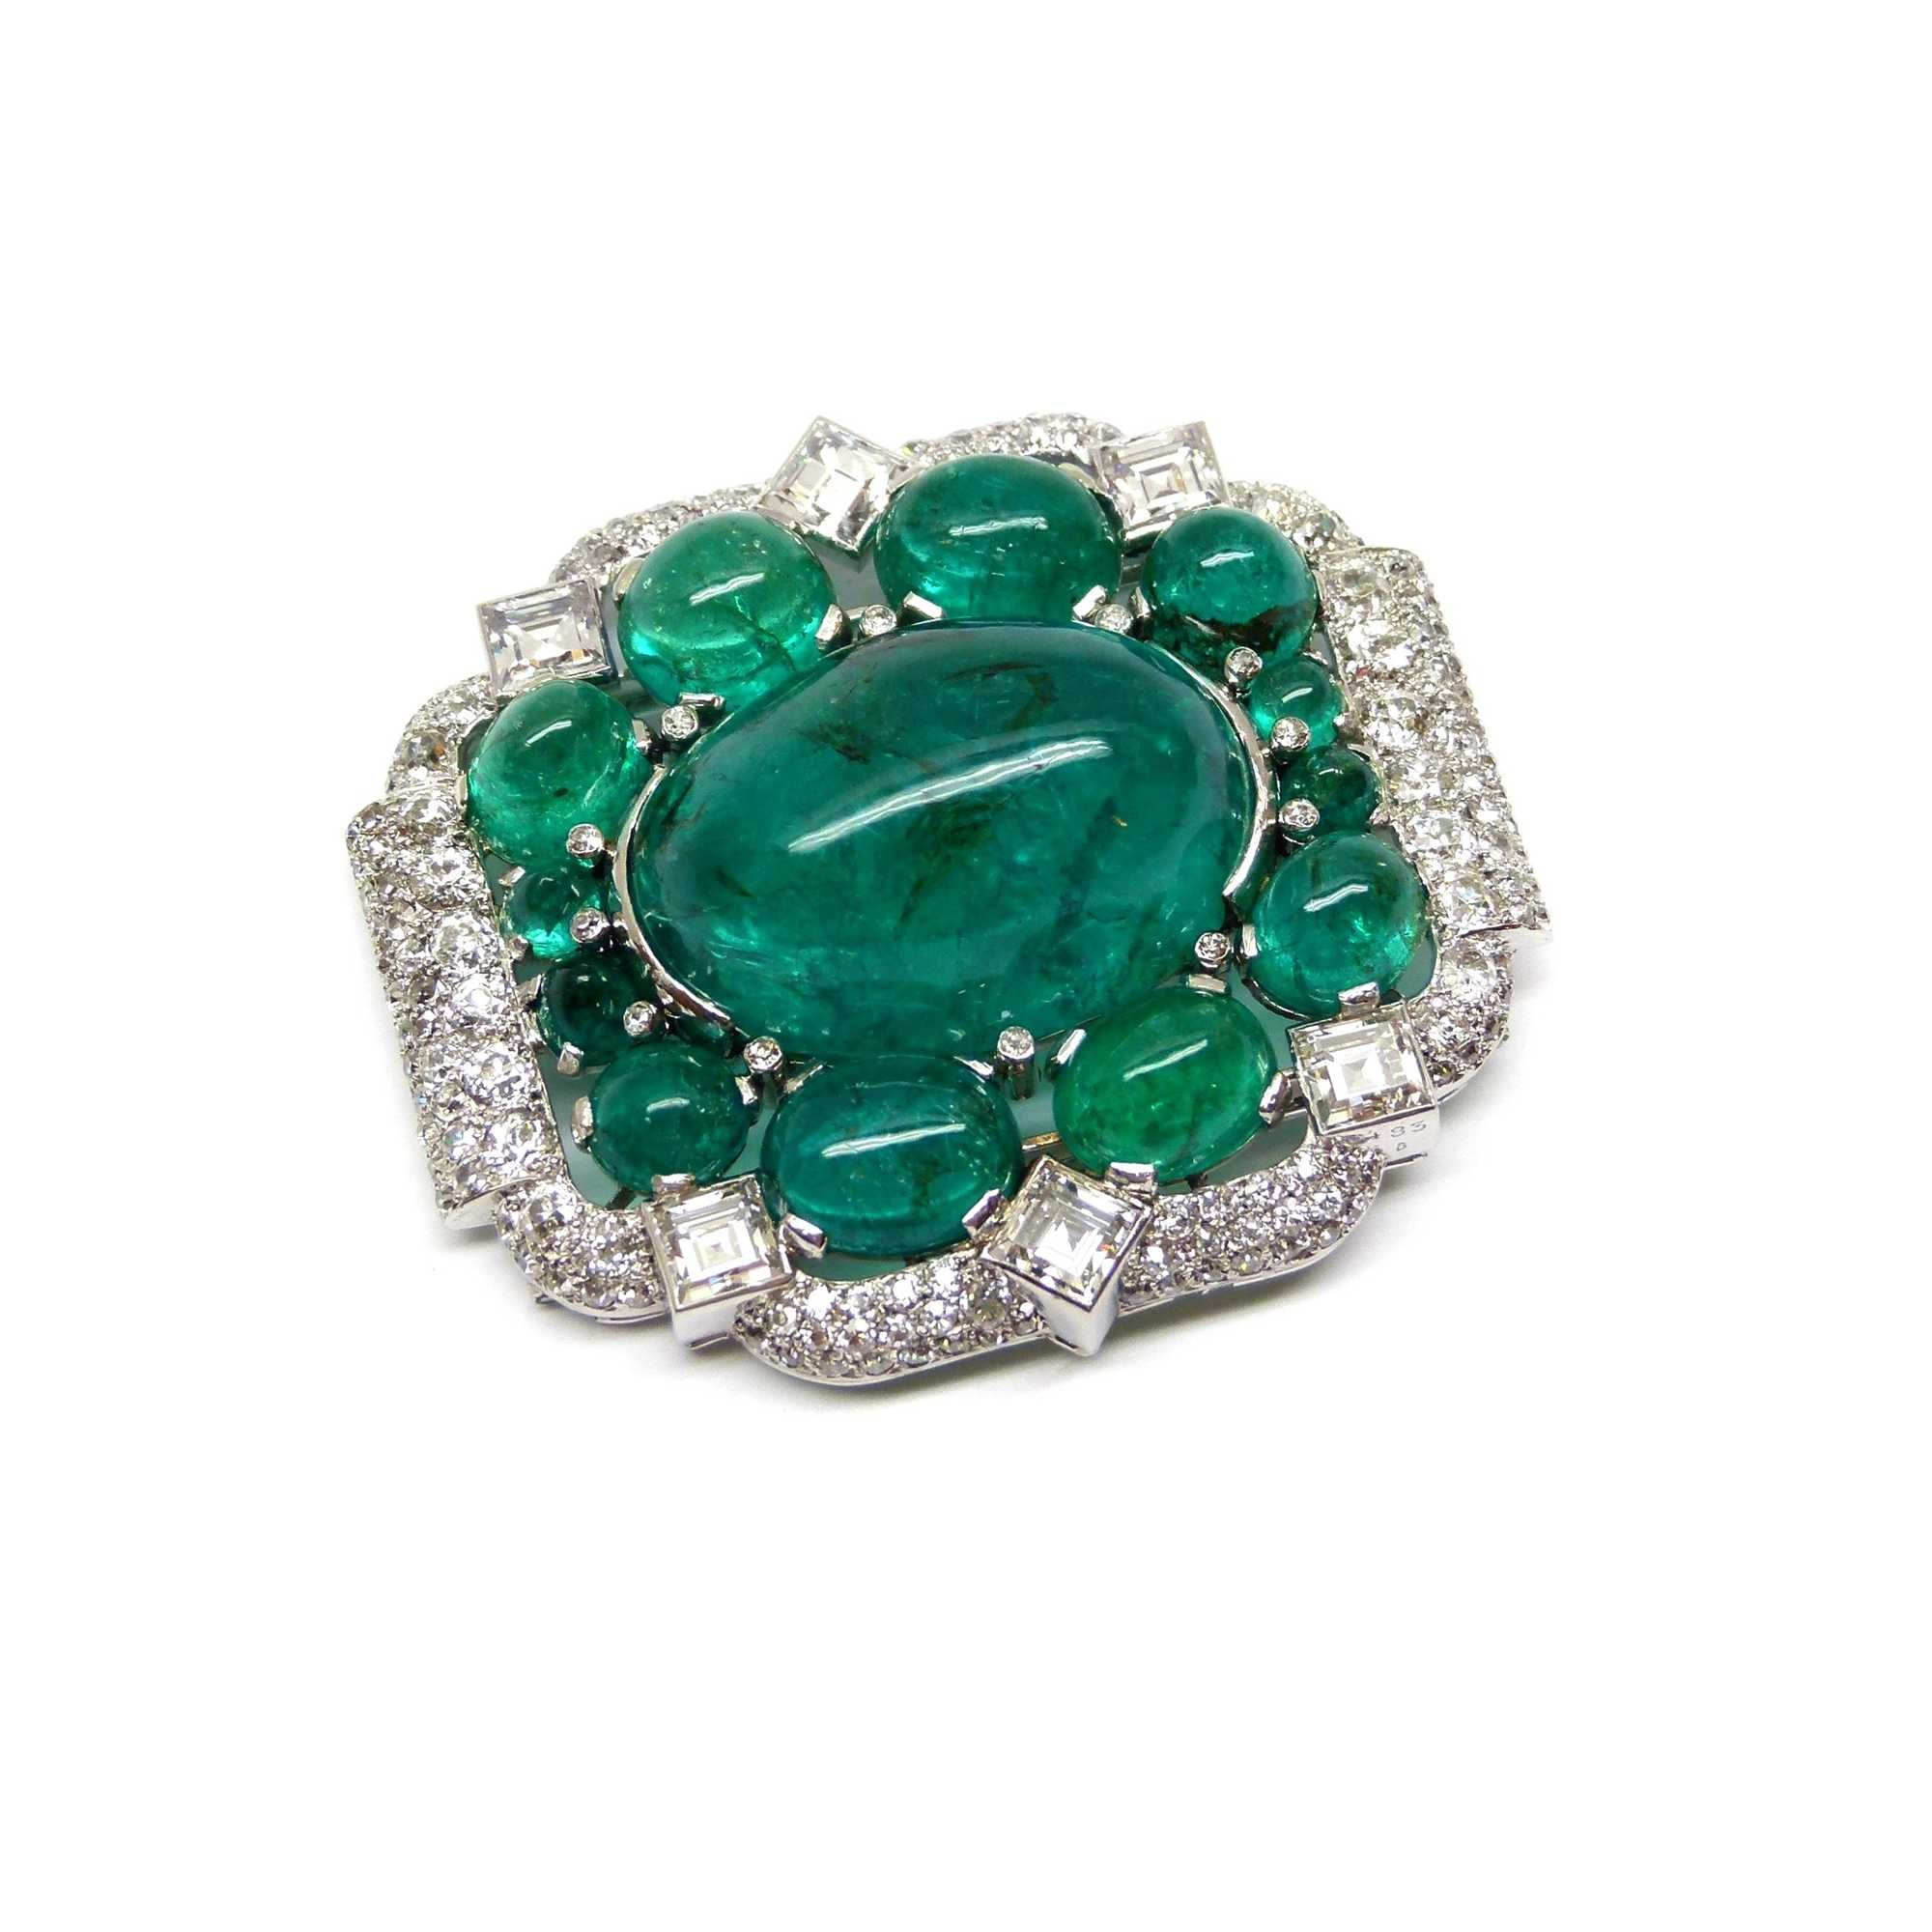 maria the jewelry granard pin countess necklace cartier worn and diamond felix platinum of by for emerald